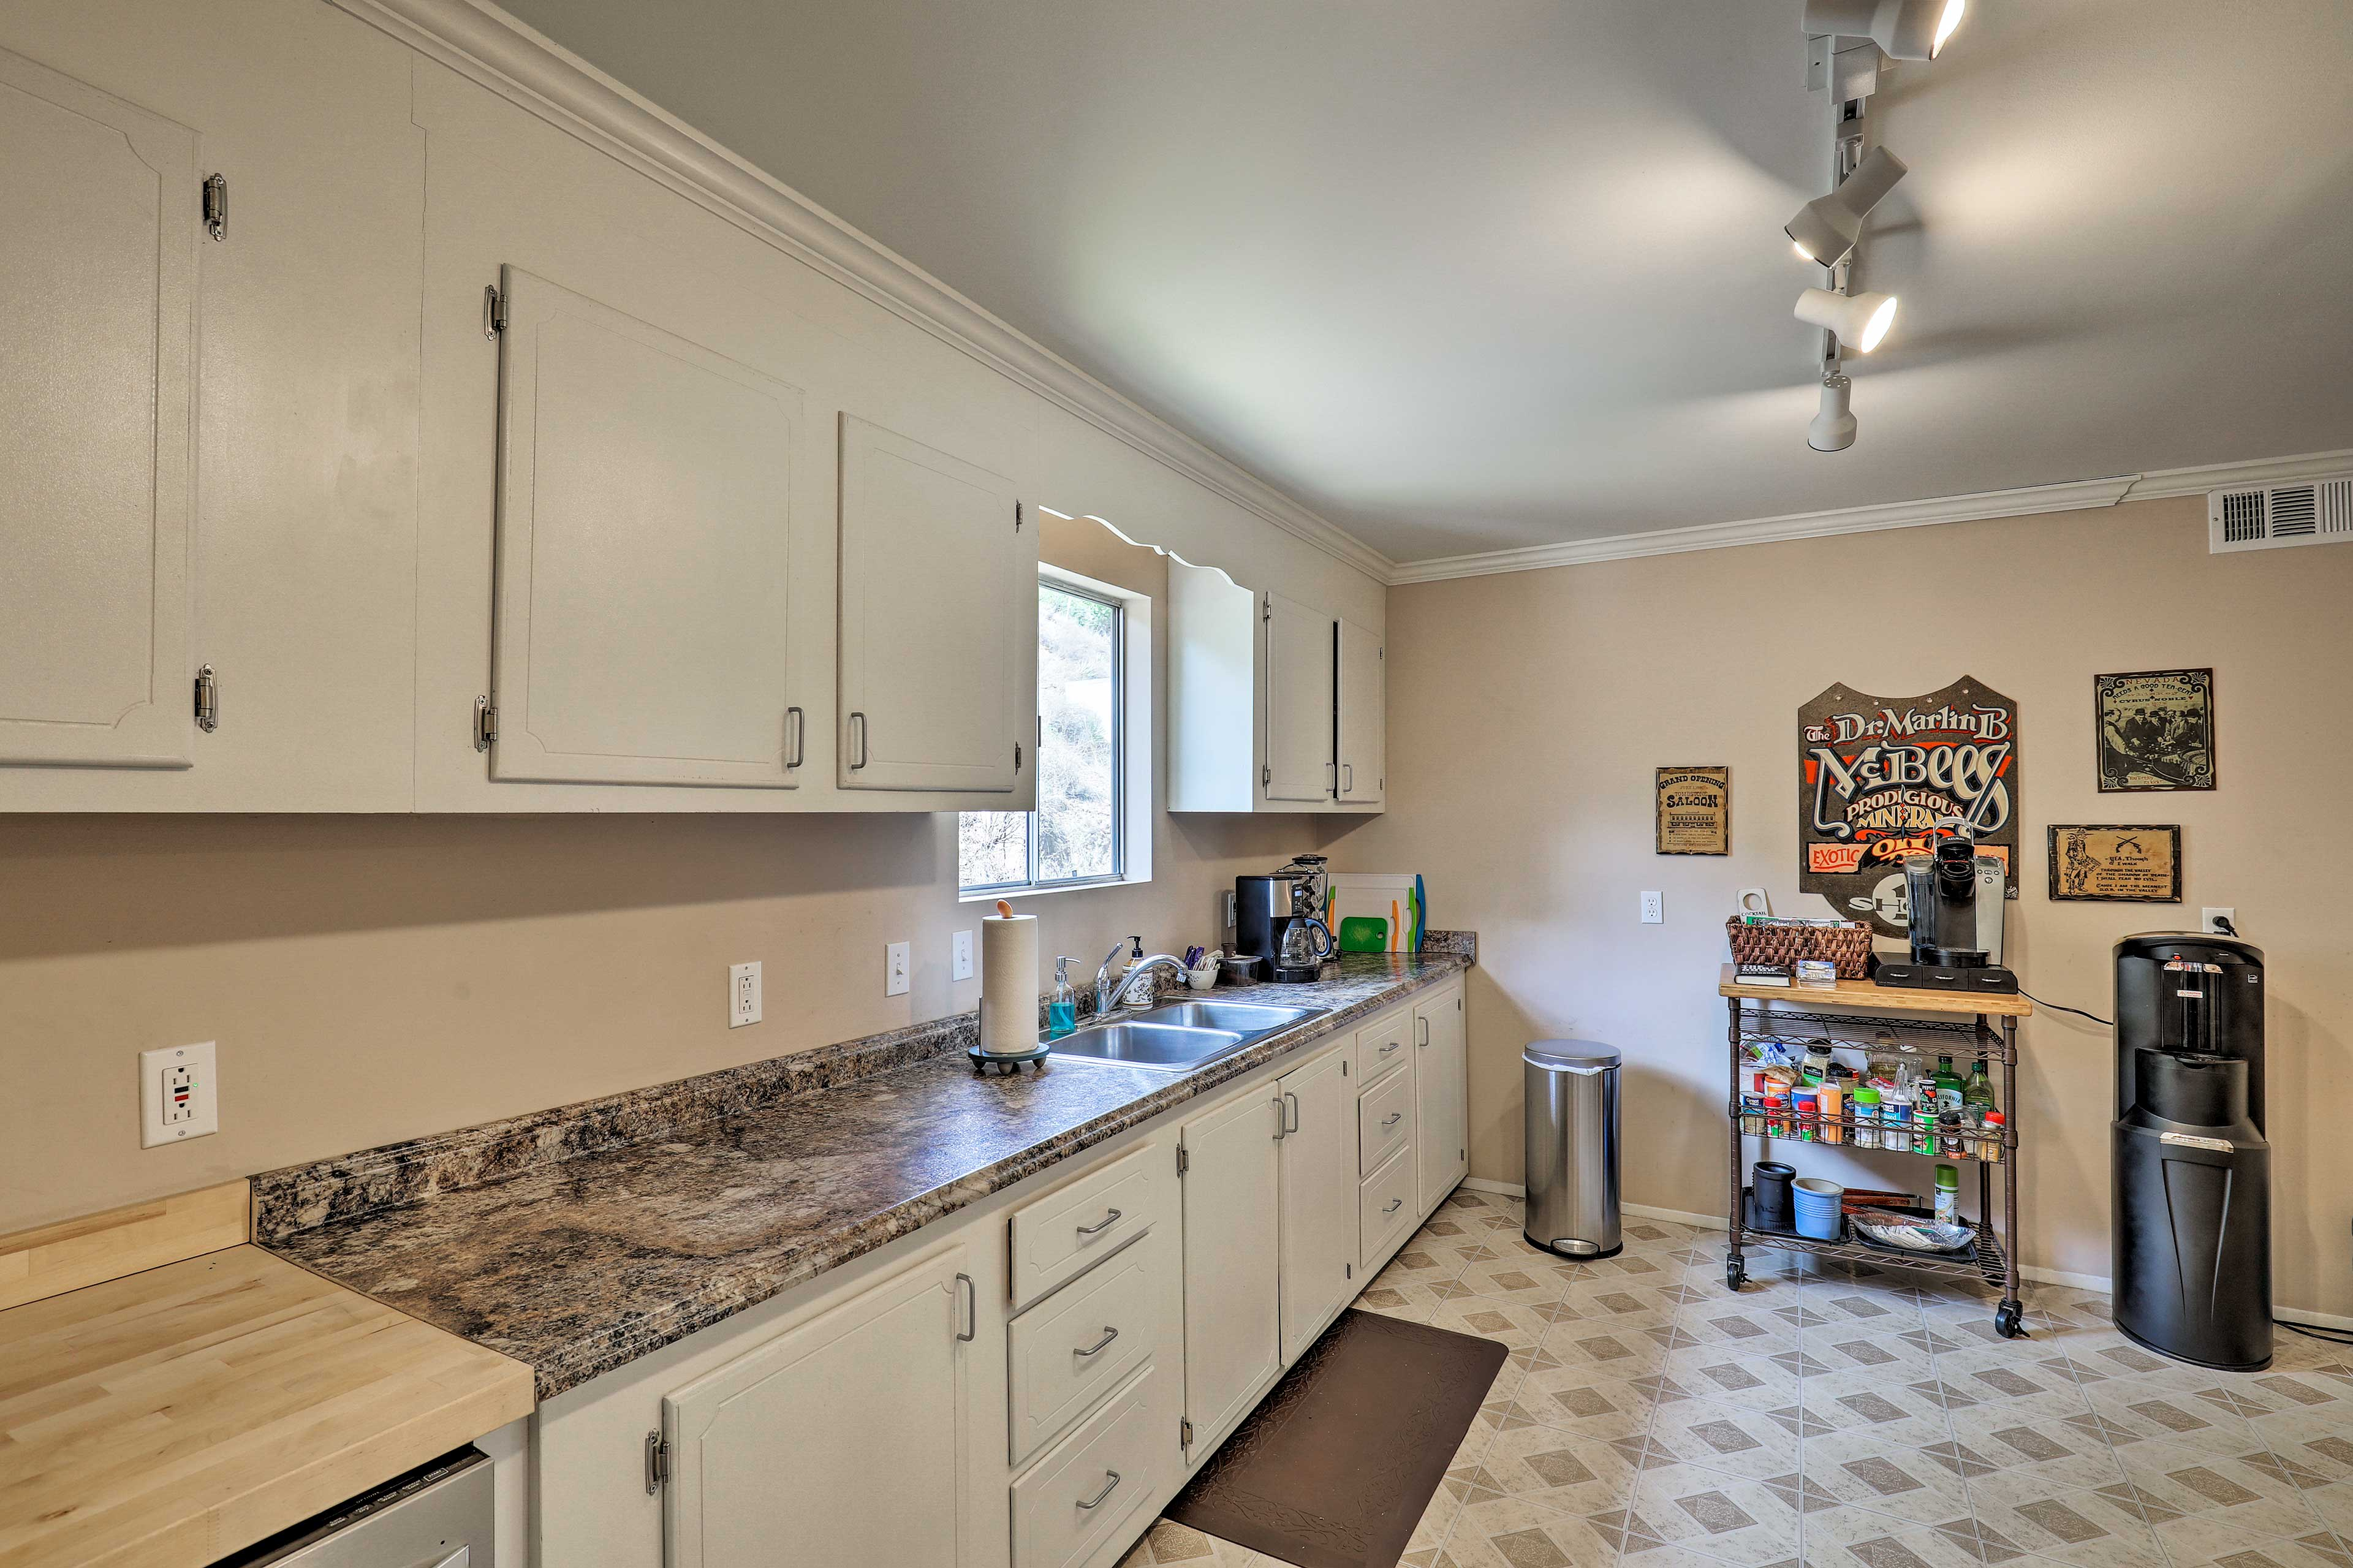 Ample countertops provide plenty of space to meal prep.